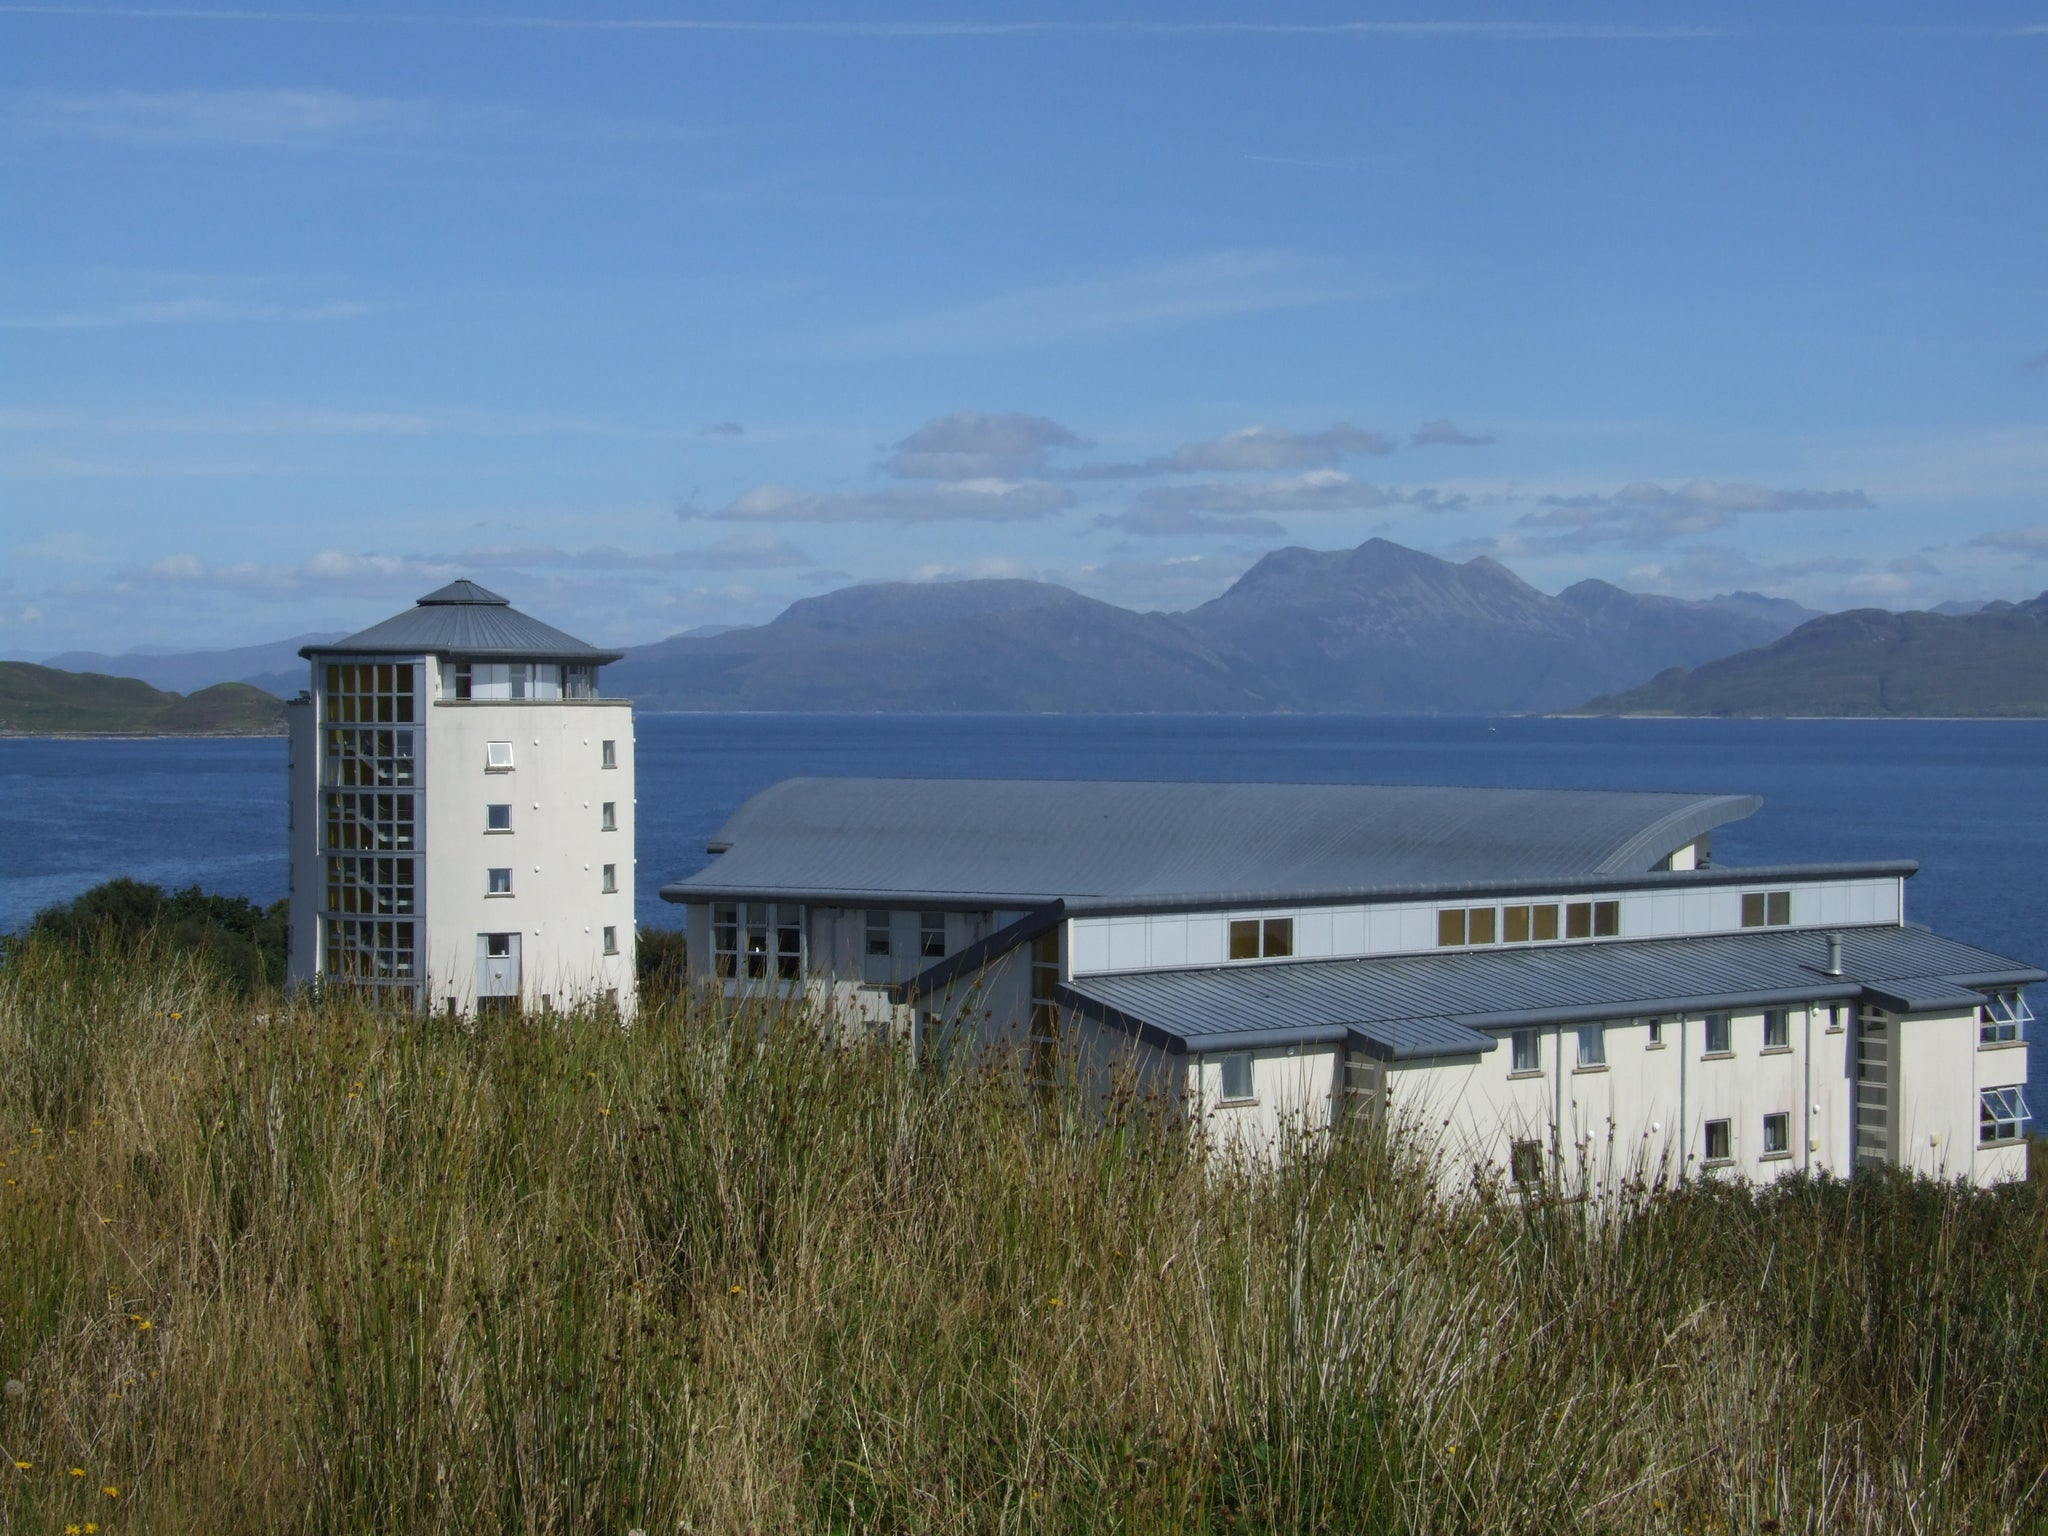 highlands and islands dating The university of the highlands and islands is a tertiary university composed of  academic partners which are the 13 colleges and research institutions in the.